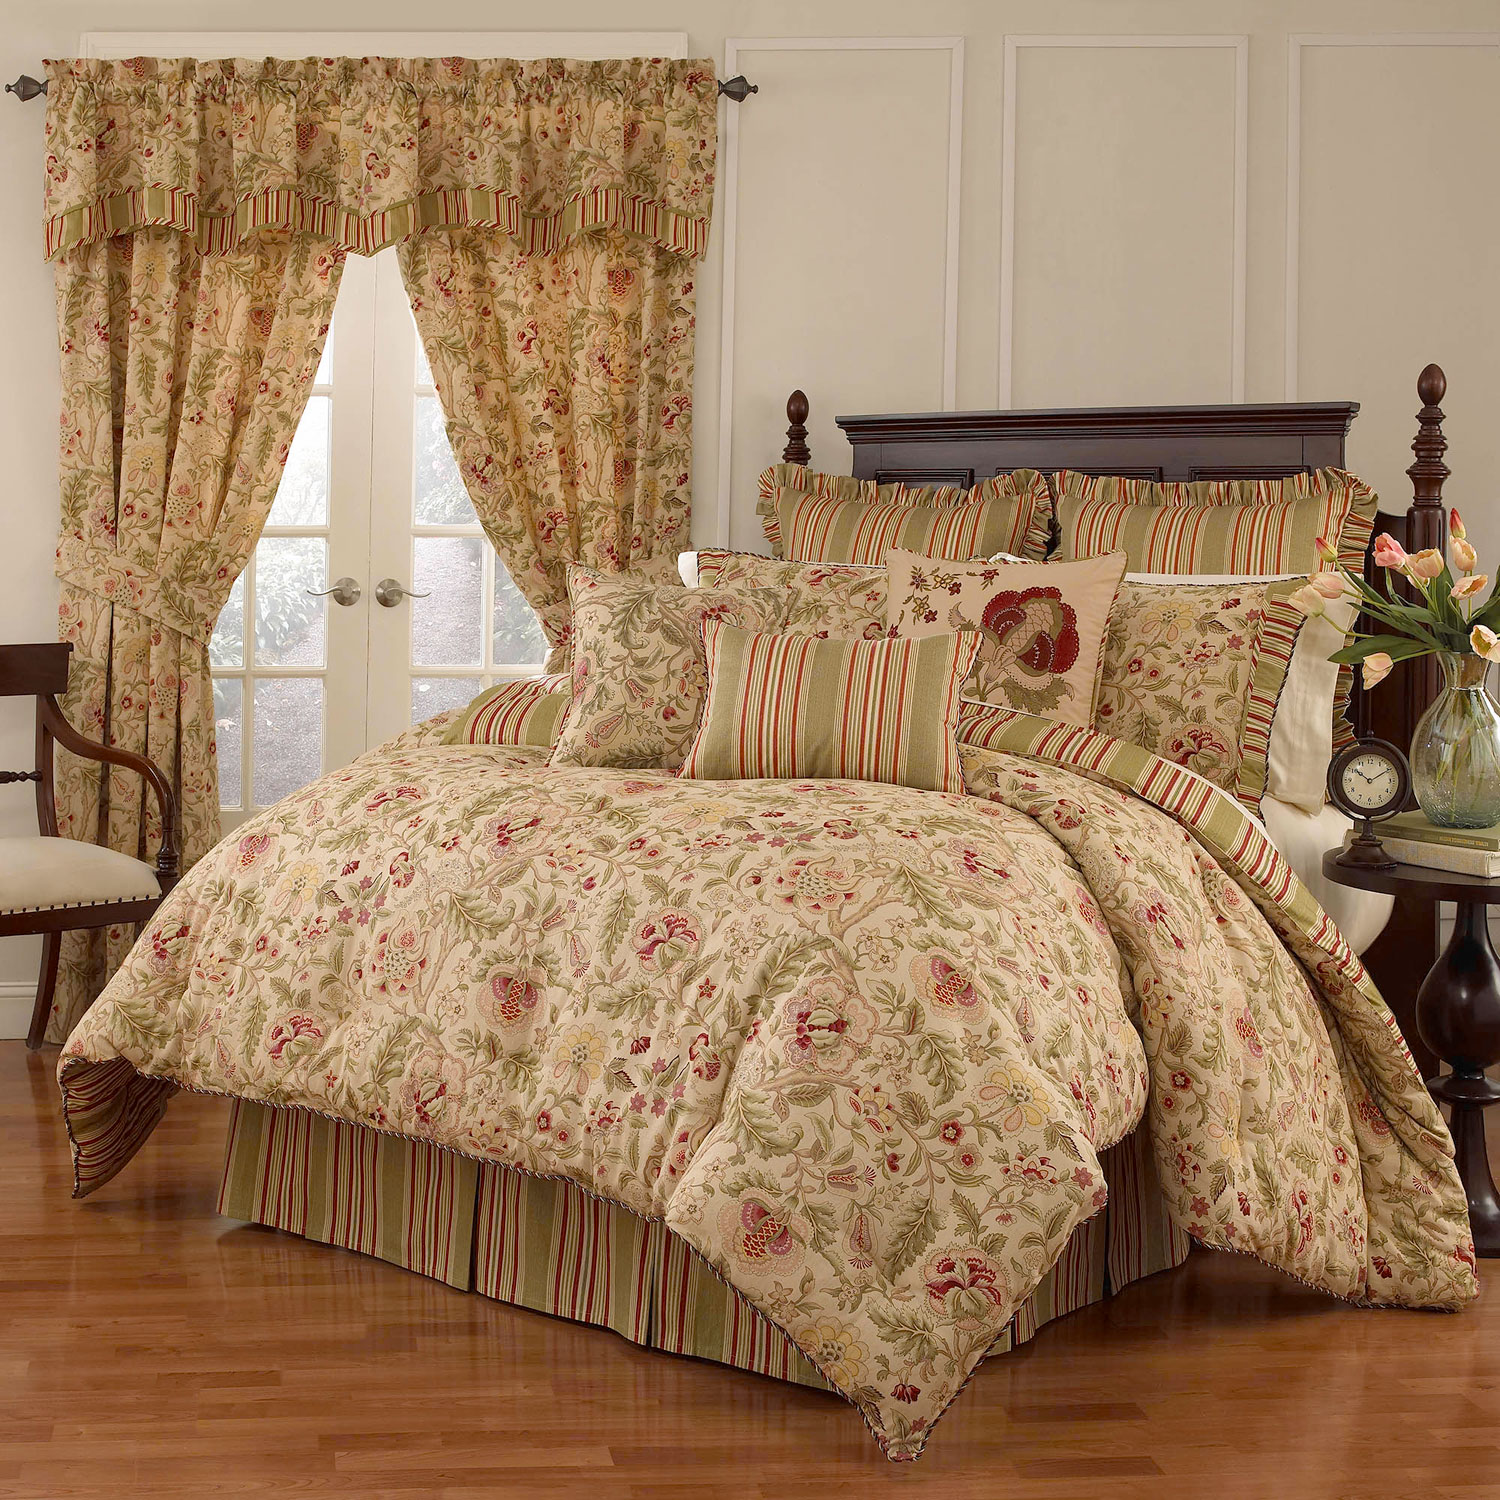 King Bedspreads | Queen Bedspreads | Cheap Queen Bedspreads